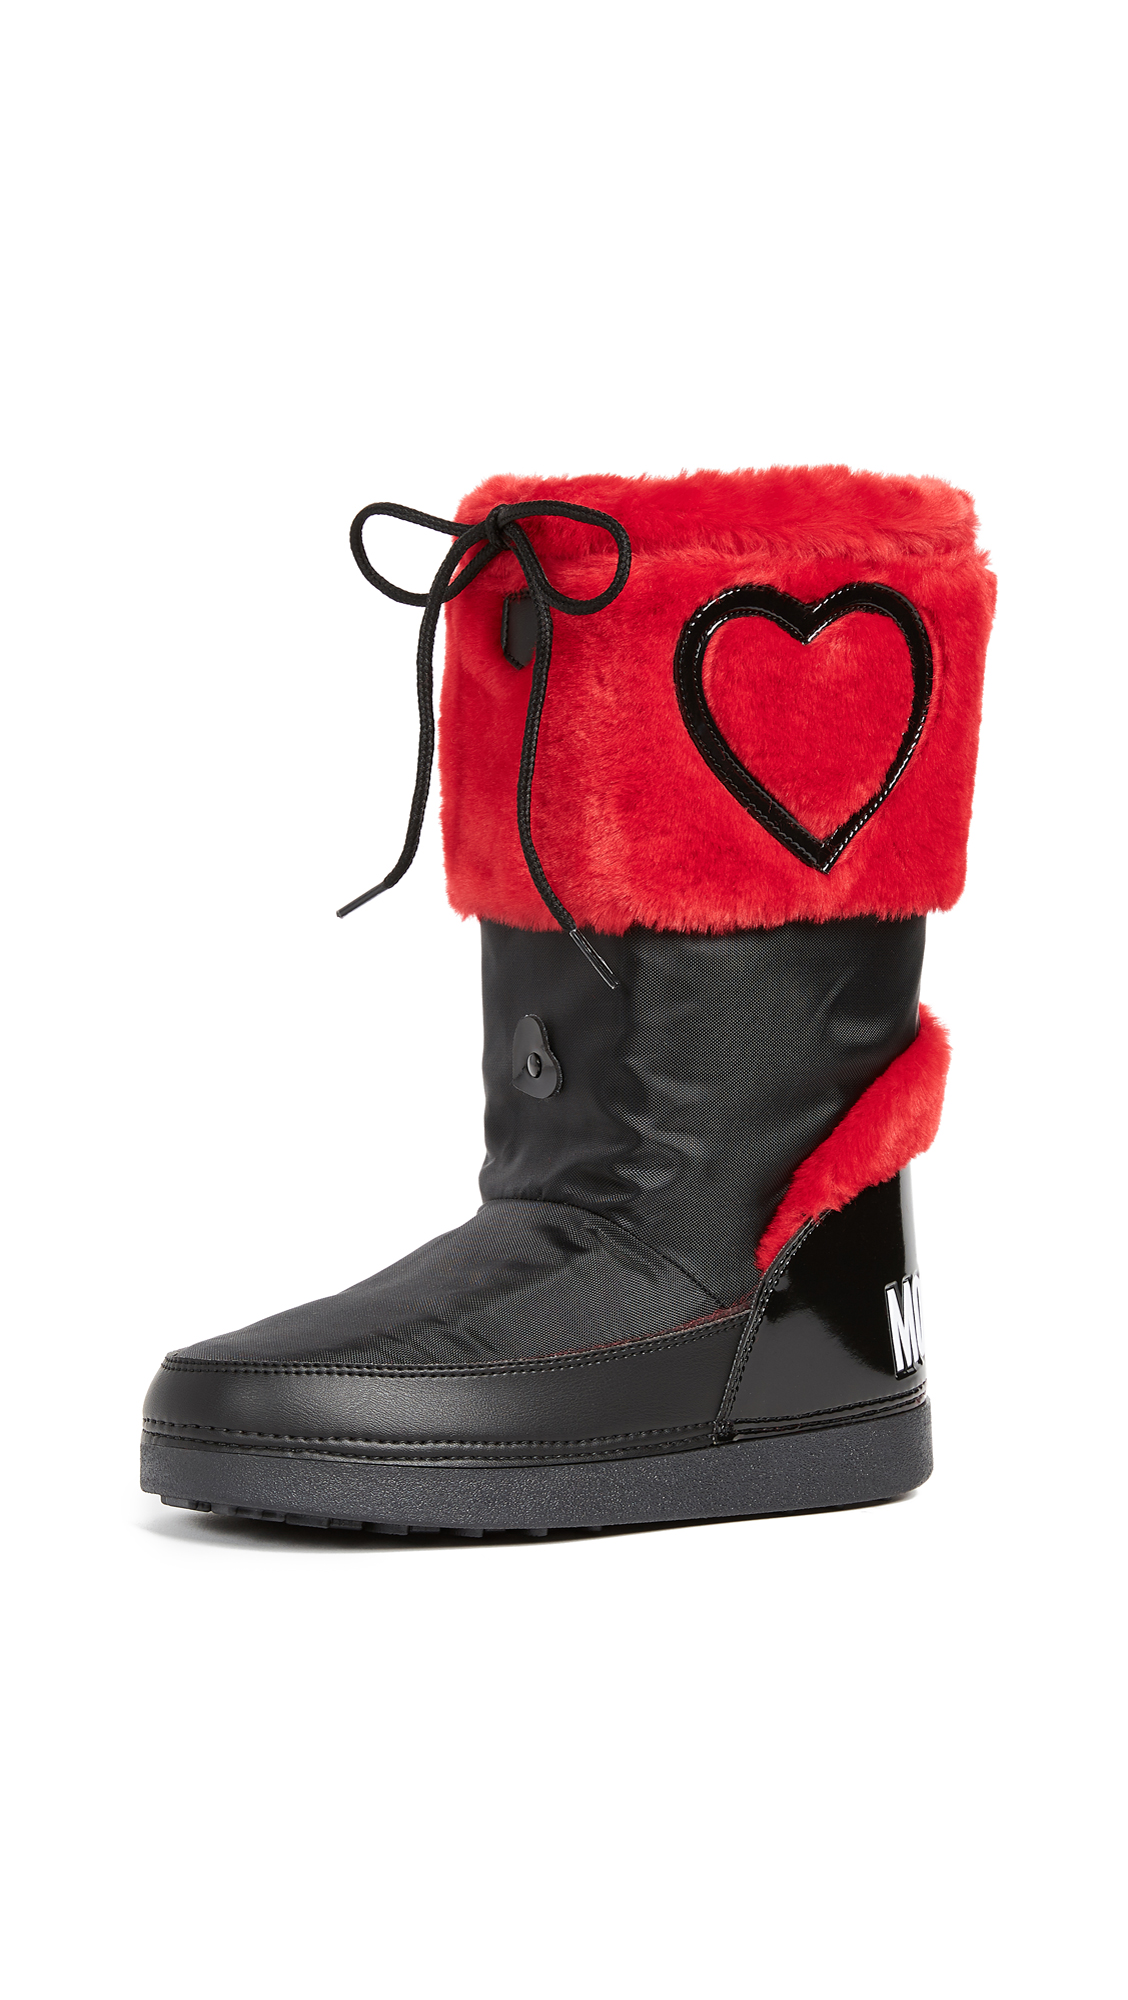 Moschino Love Moschino Ankle Boots - Red